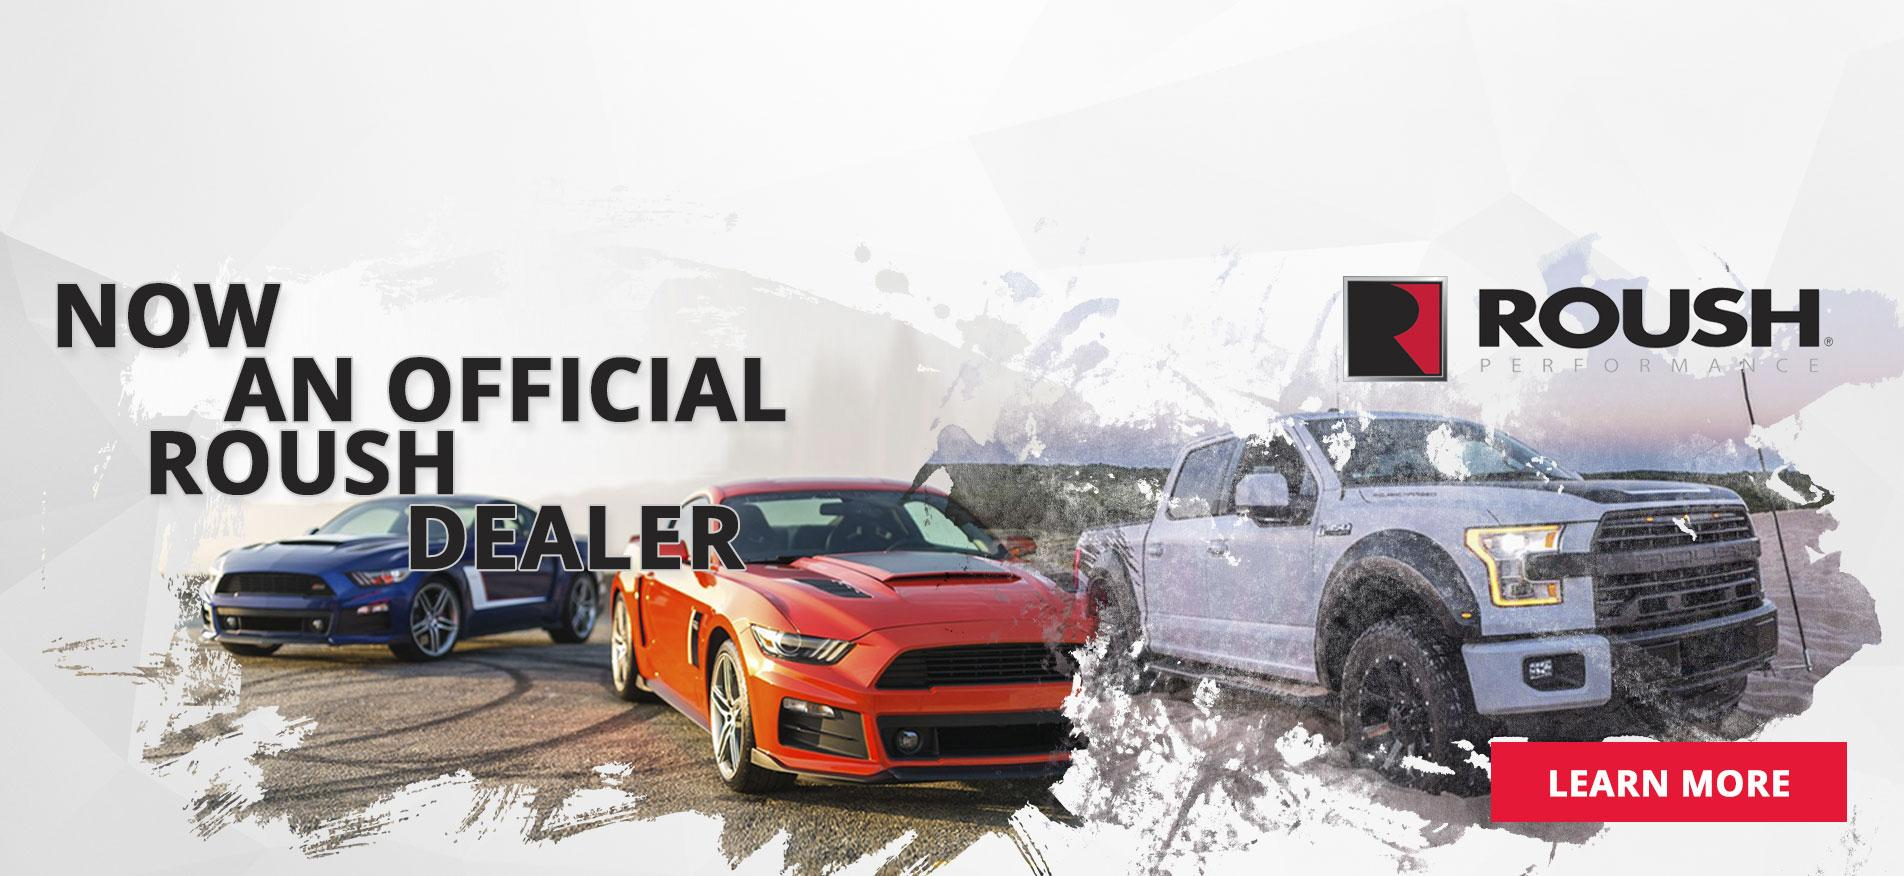 Official Roush Dealer